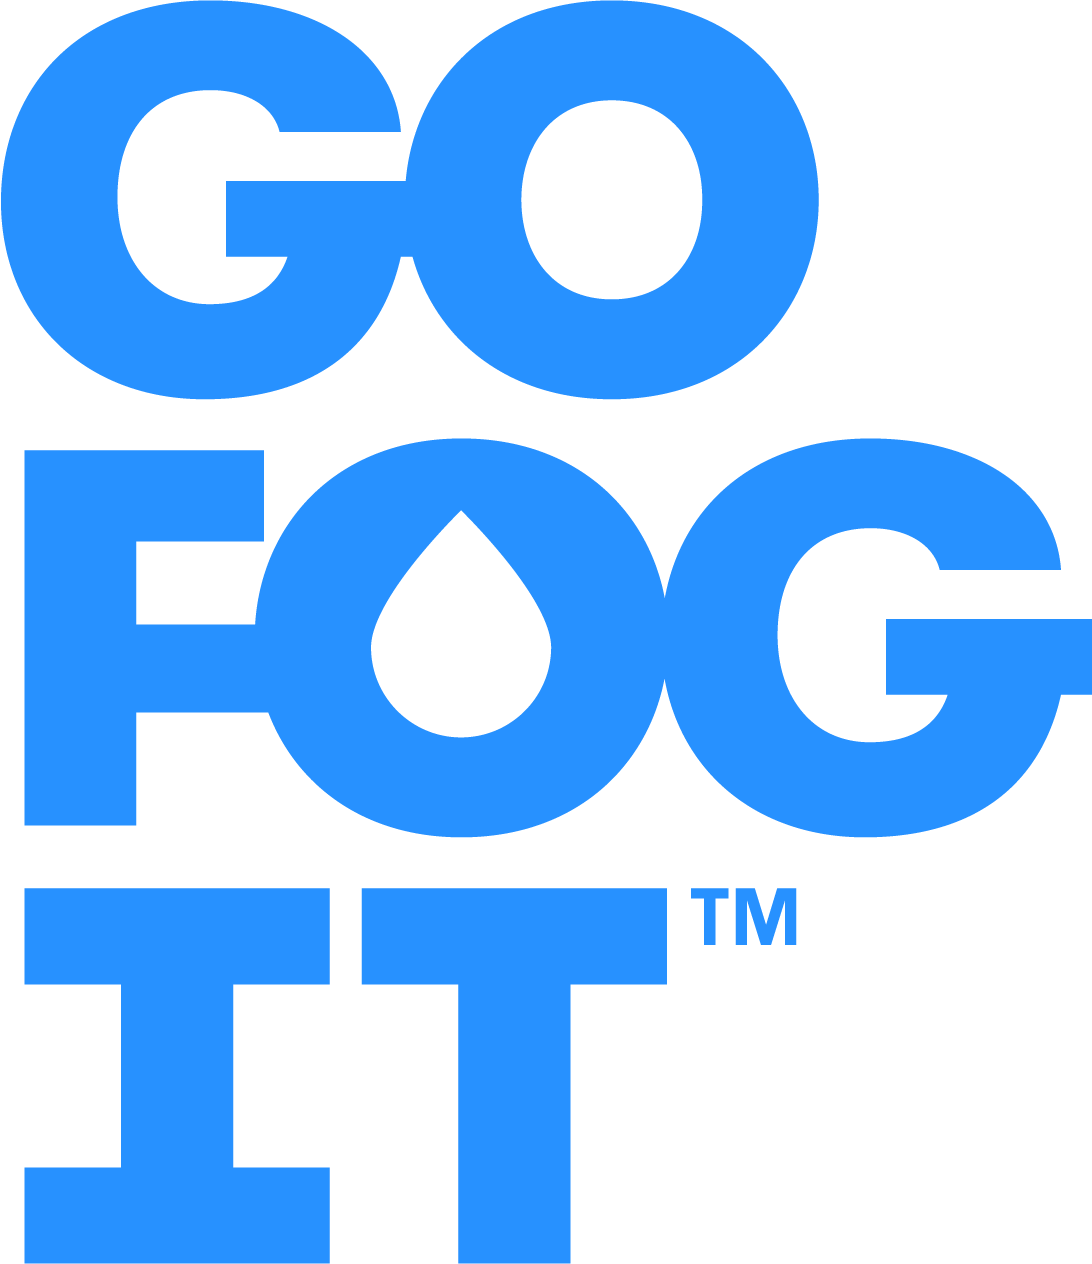 go fog it logo